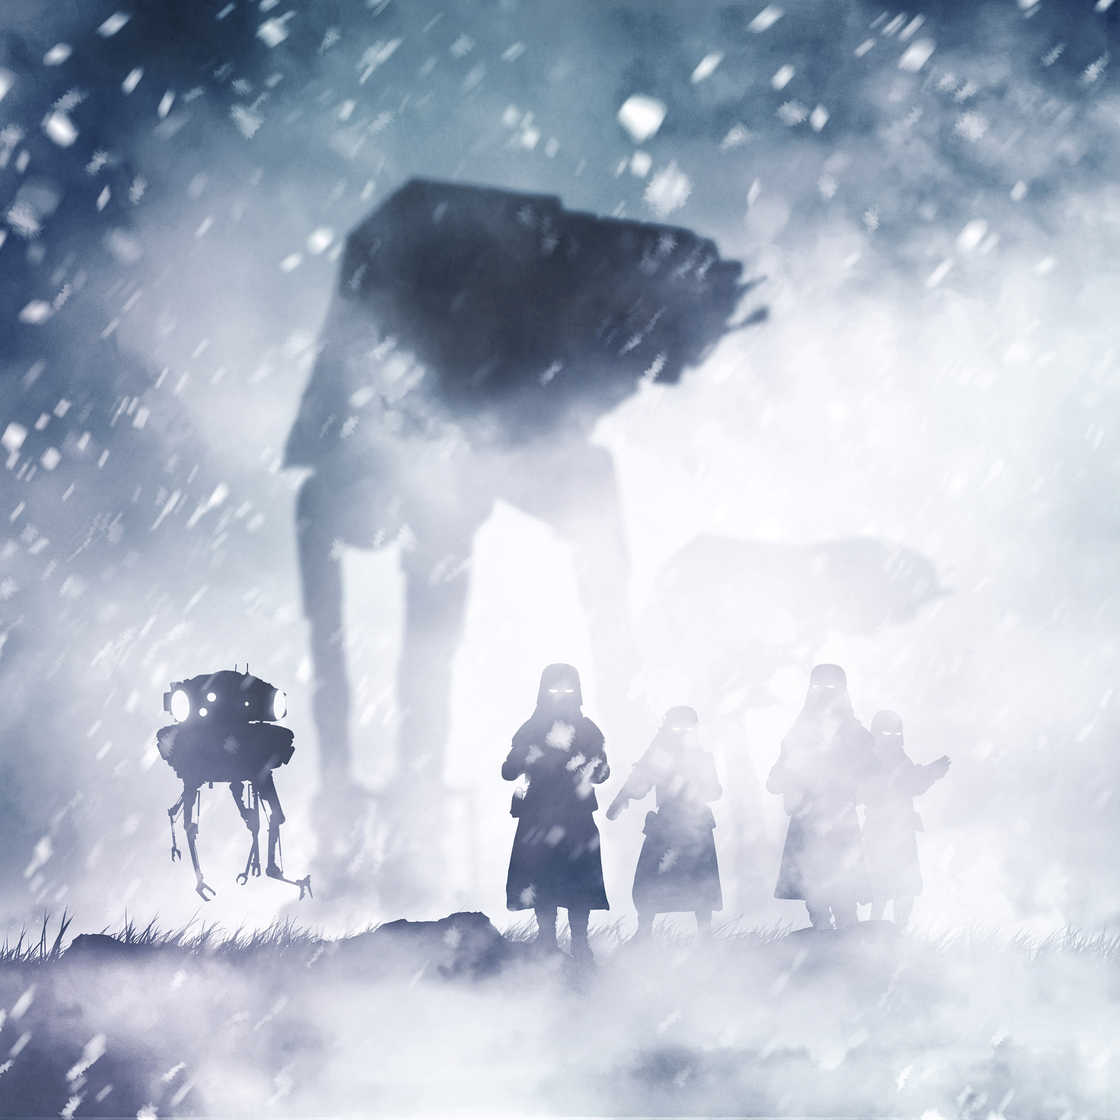 Star Wars Cosmos - These awesome photos are mixing toys and paper art